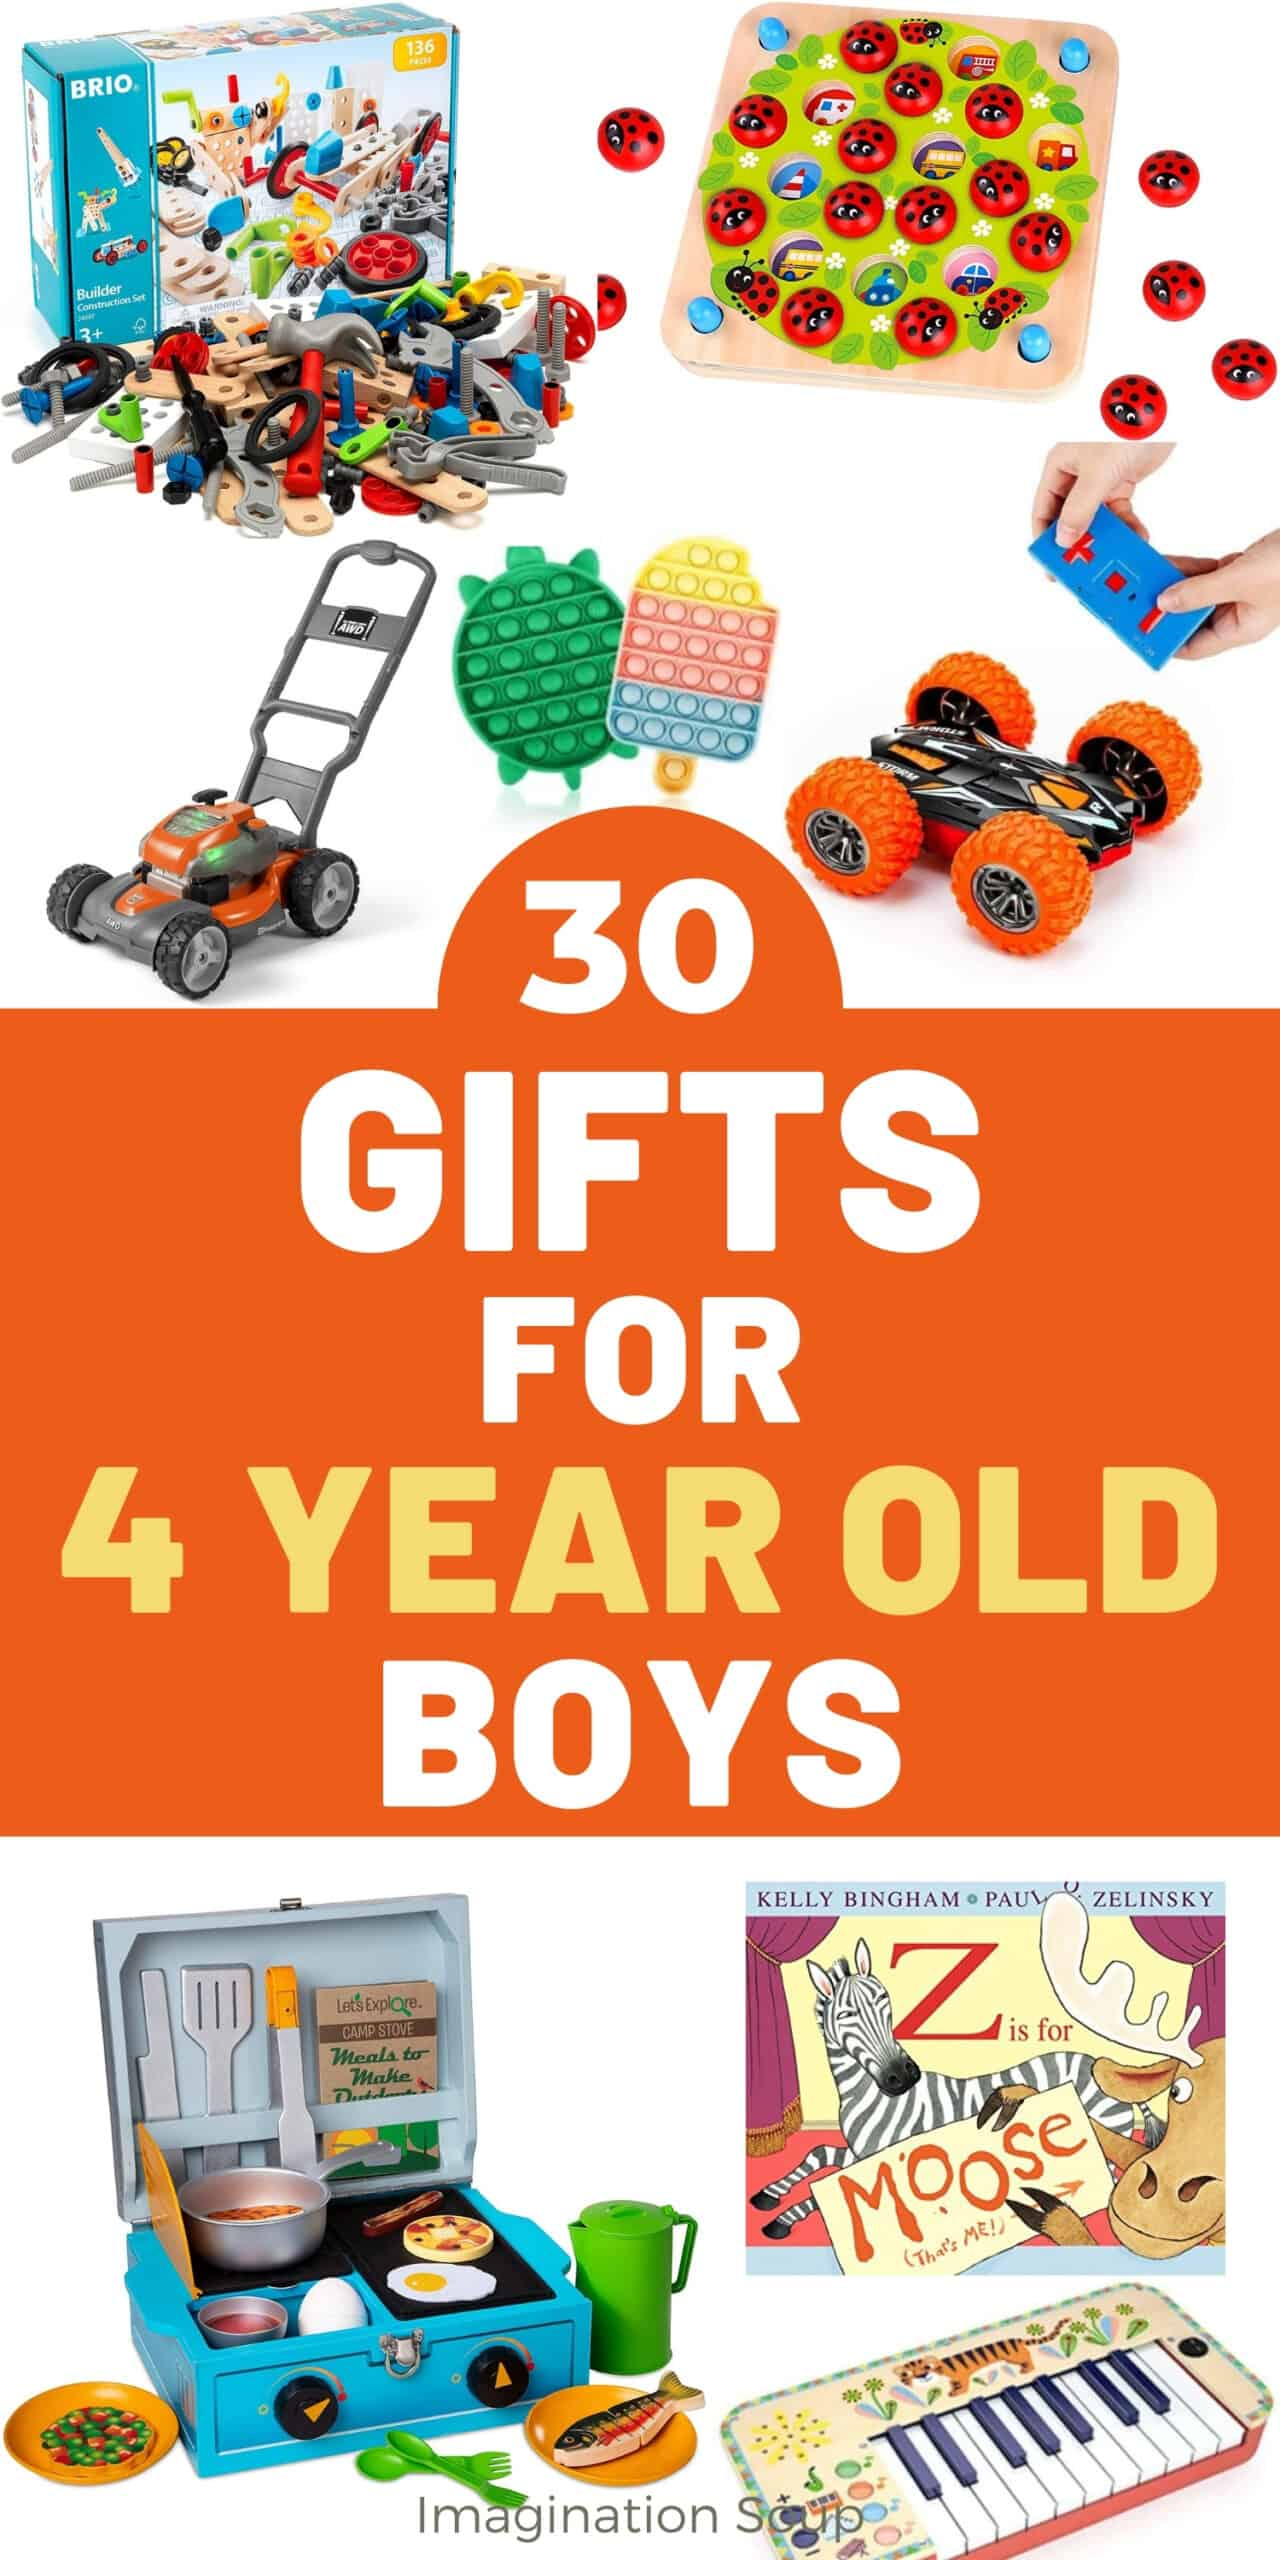 toys and gifts for 4 year old boys